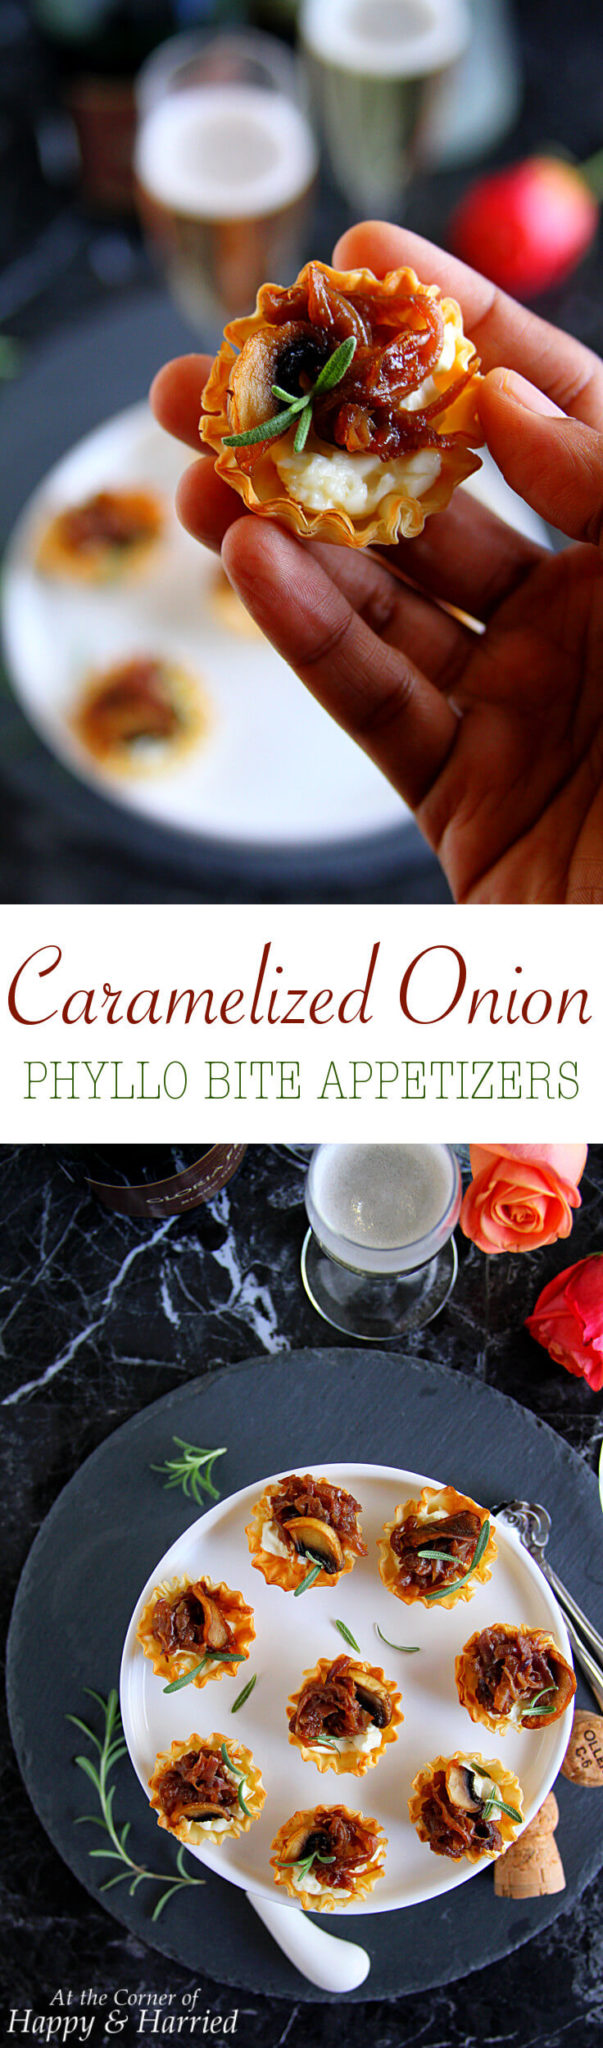 CARAMELIZED ONION PHYLLO BITE APPETIZERS - HAPPY&HARRIED